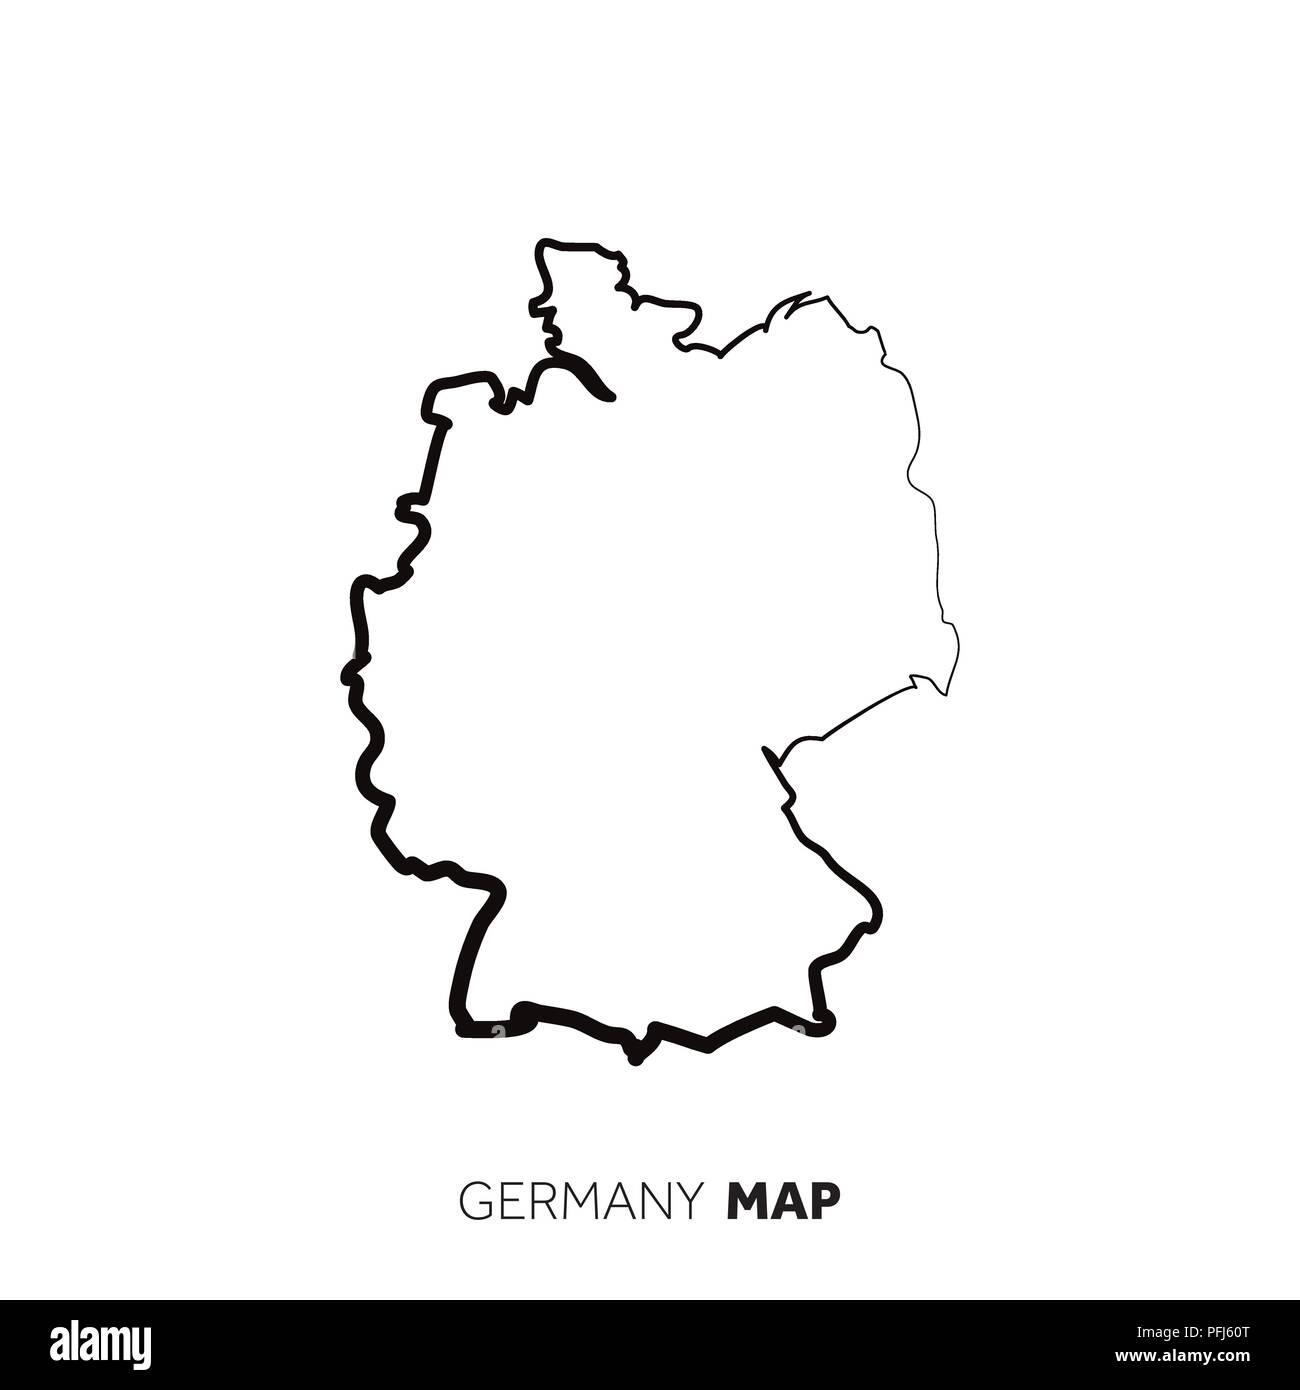 Map Of Germany Outline.Germany Vector Country Map Outline Black Line On White Background